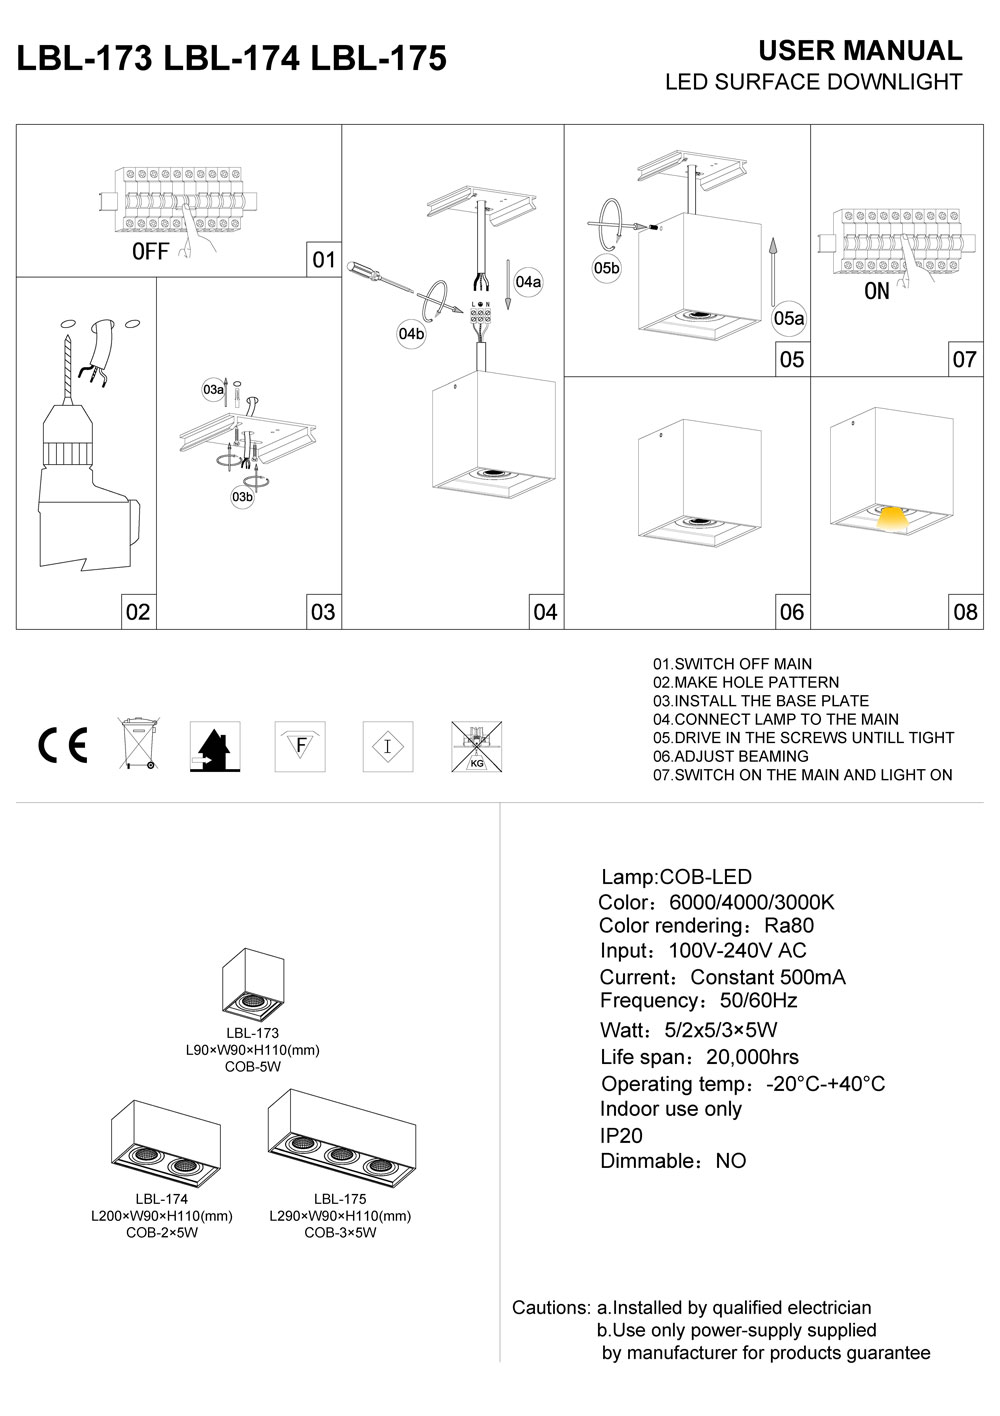 LBL-173-LBL-174-LBL-175 surface mounted LED downlight installation guide